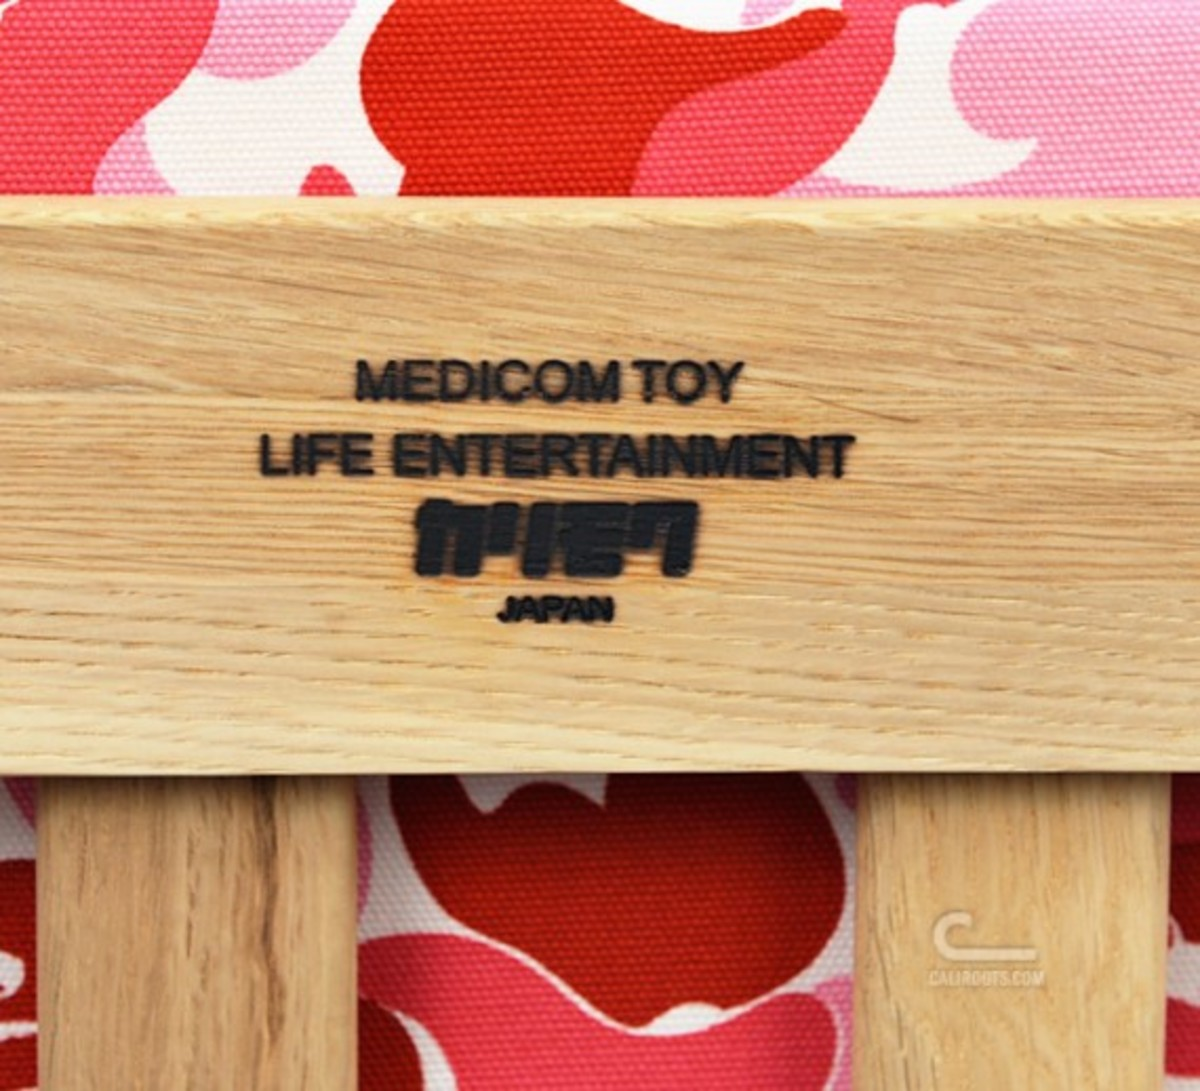 a-bathing-ape-medicom-toy-karimoku-bape-camo-furniture-23